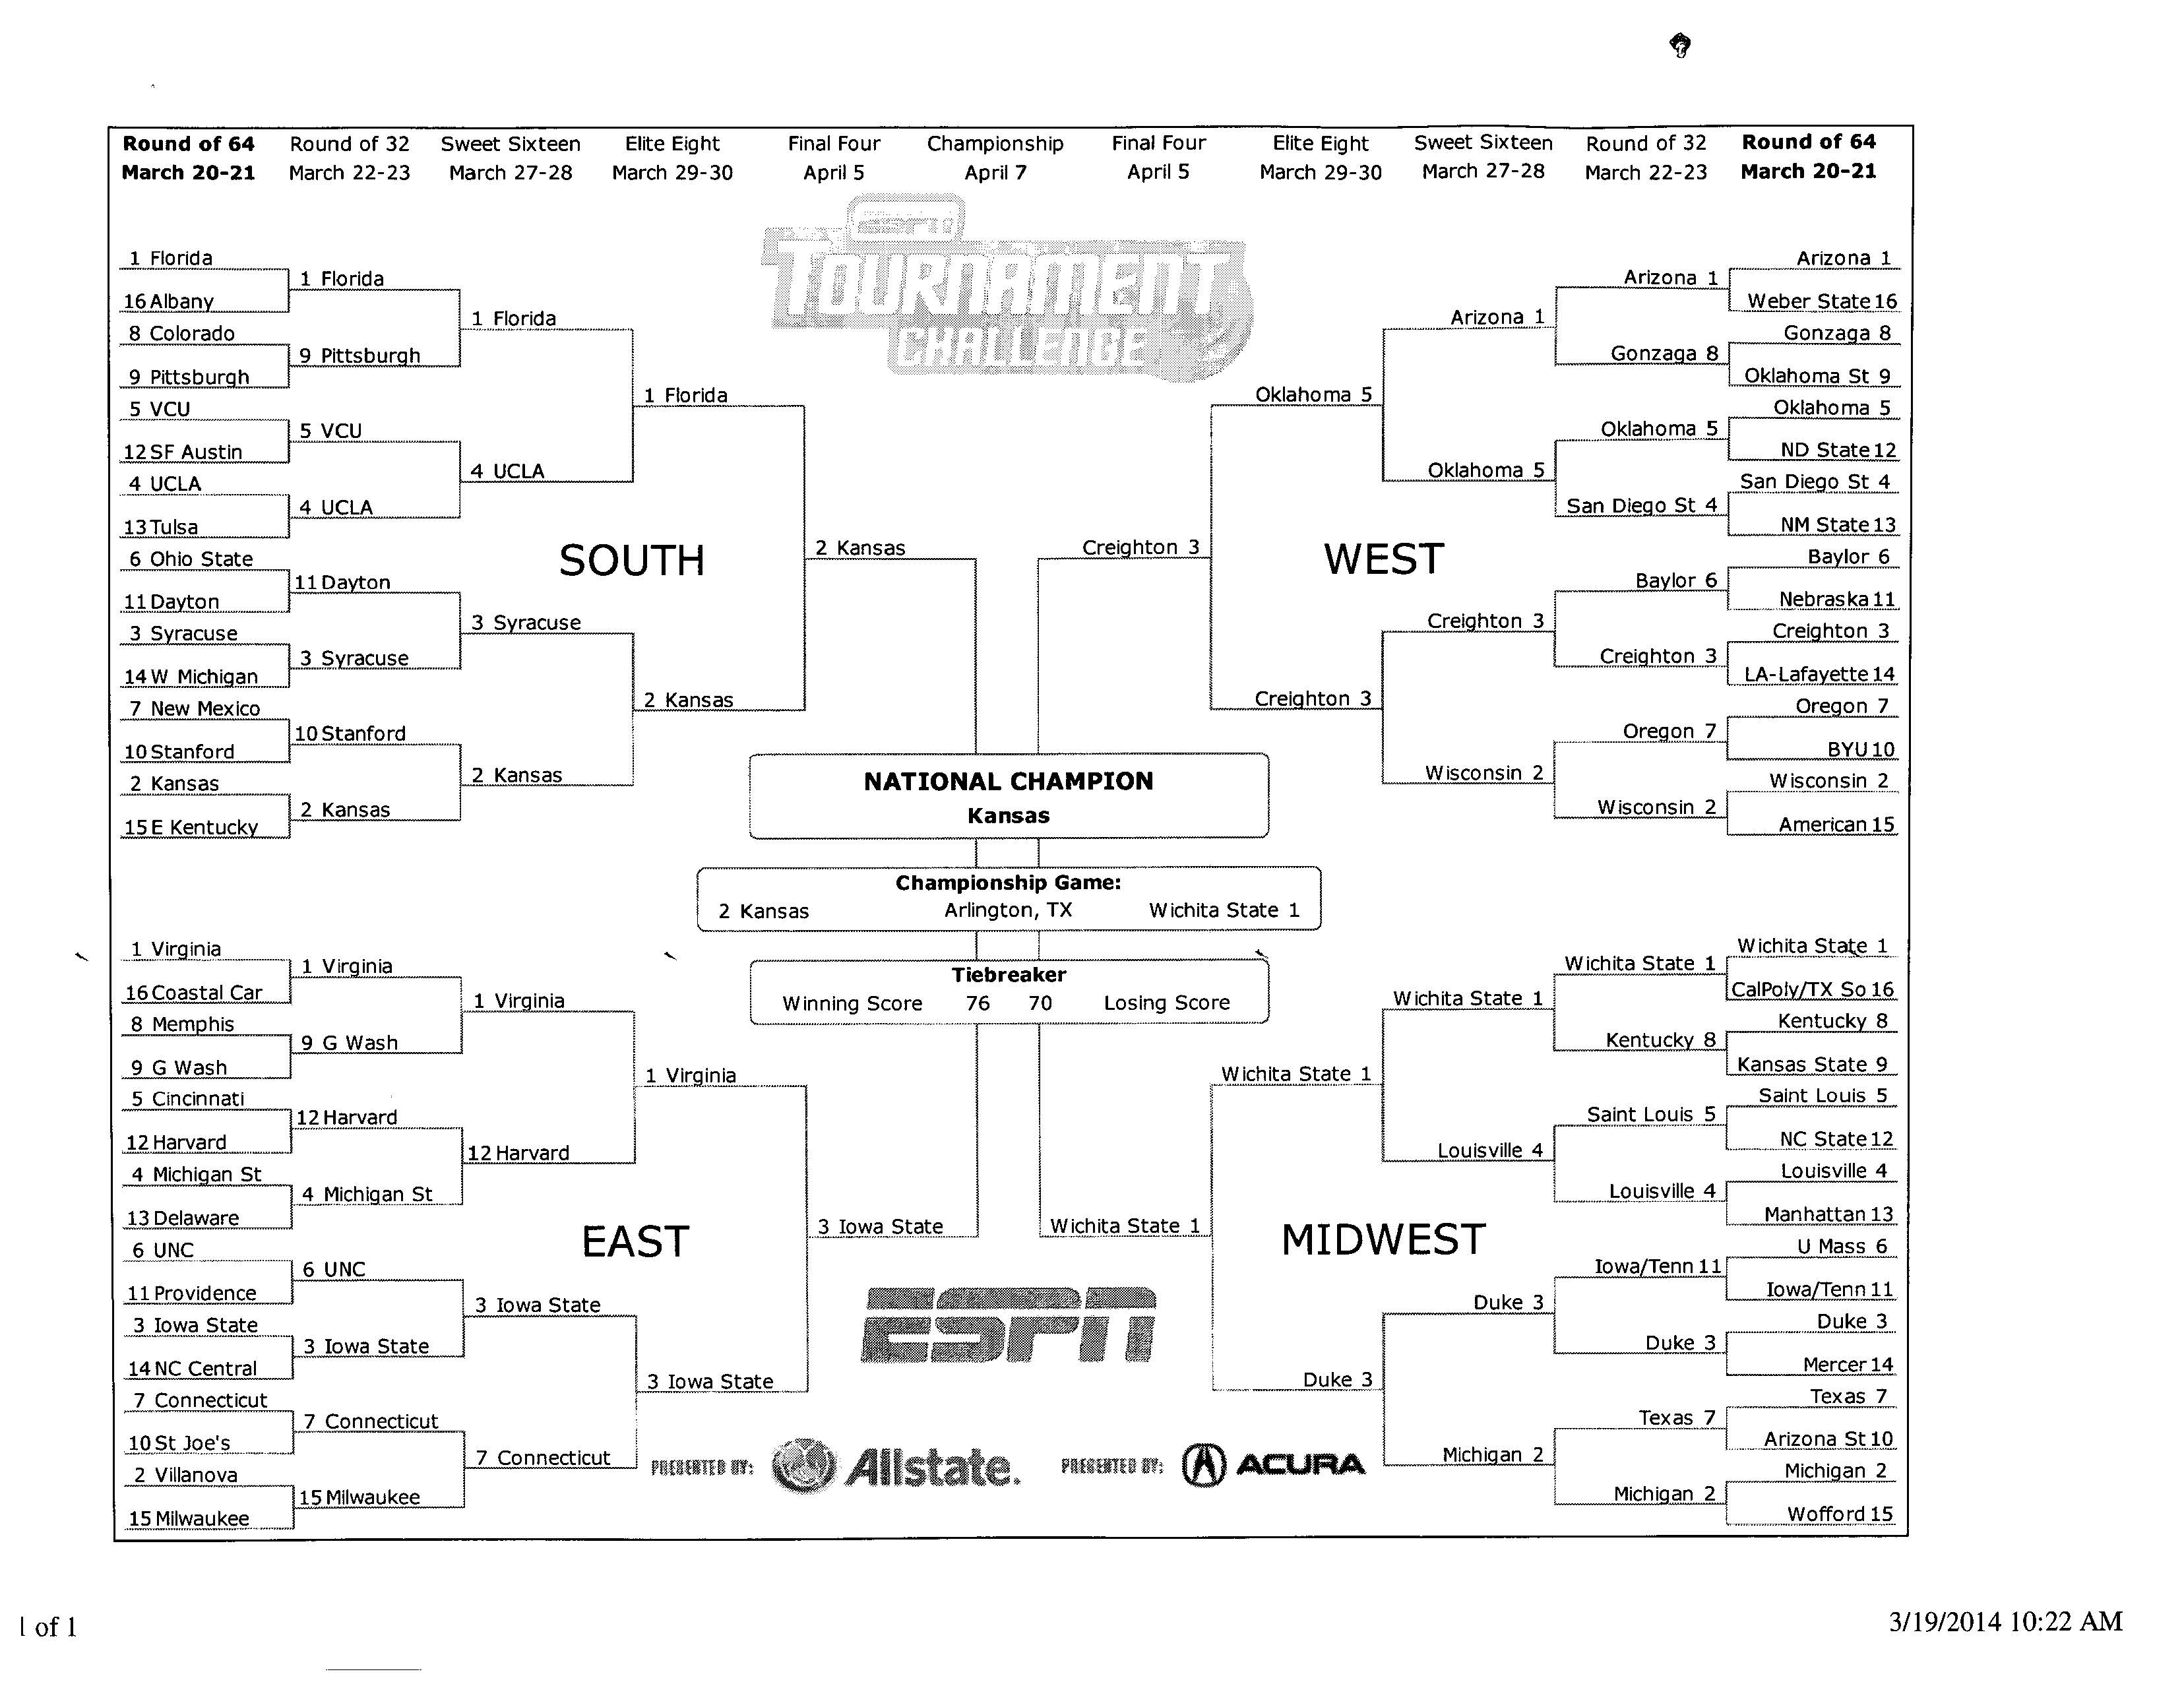 My 2014 NCAA Bracket